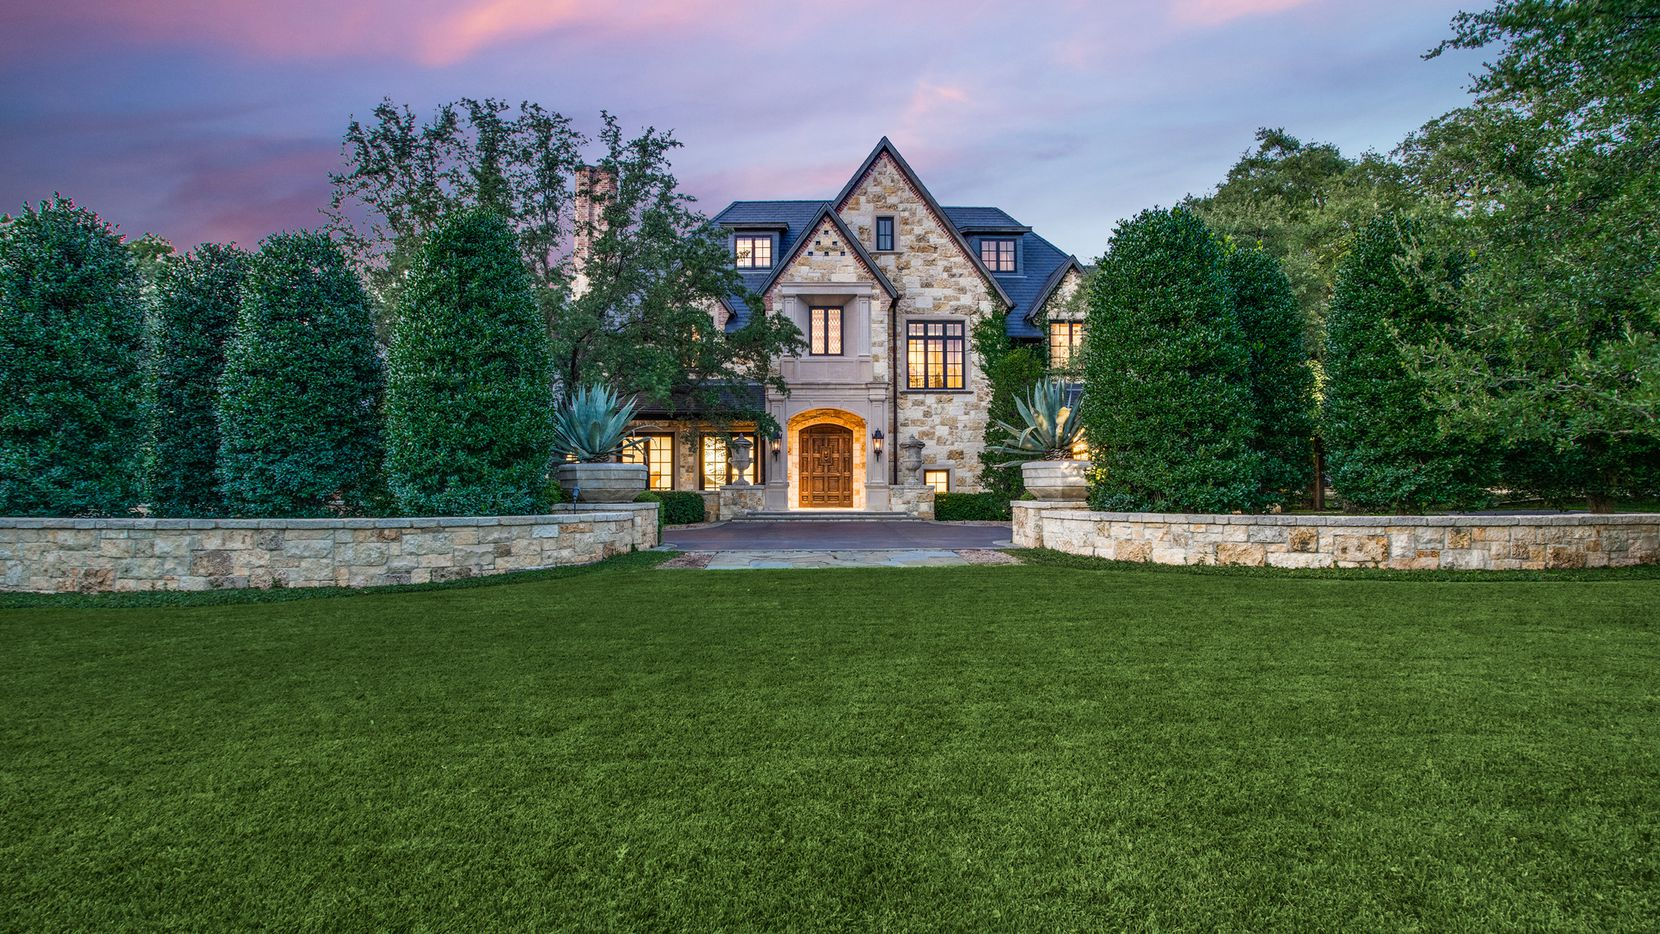 The six-bedroom estate at 5031 Deloache Ave. is situated on almost 2 acres in Preston Hollow.